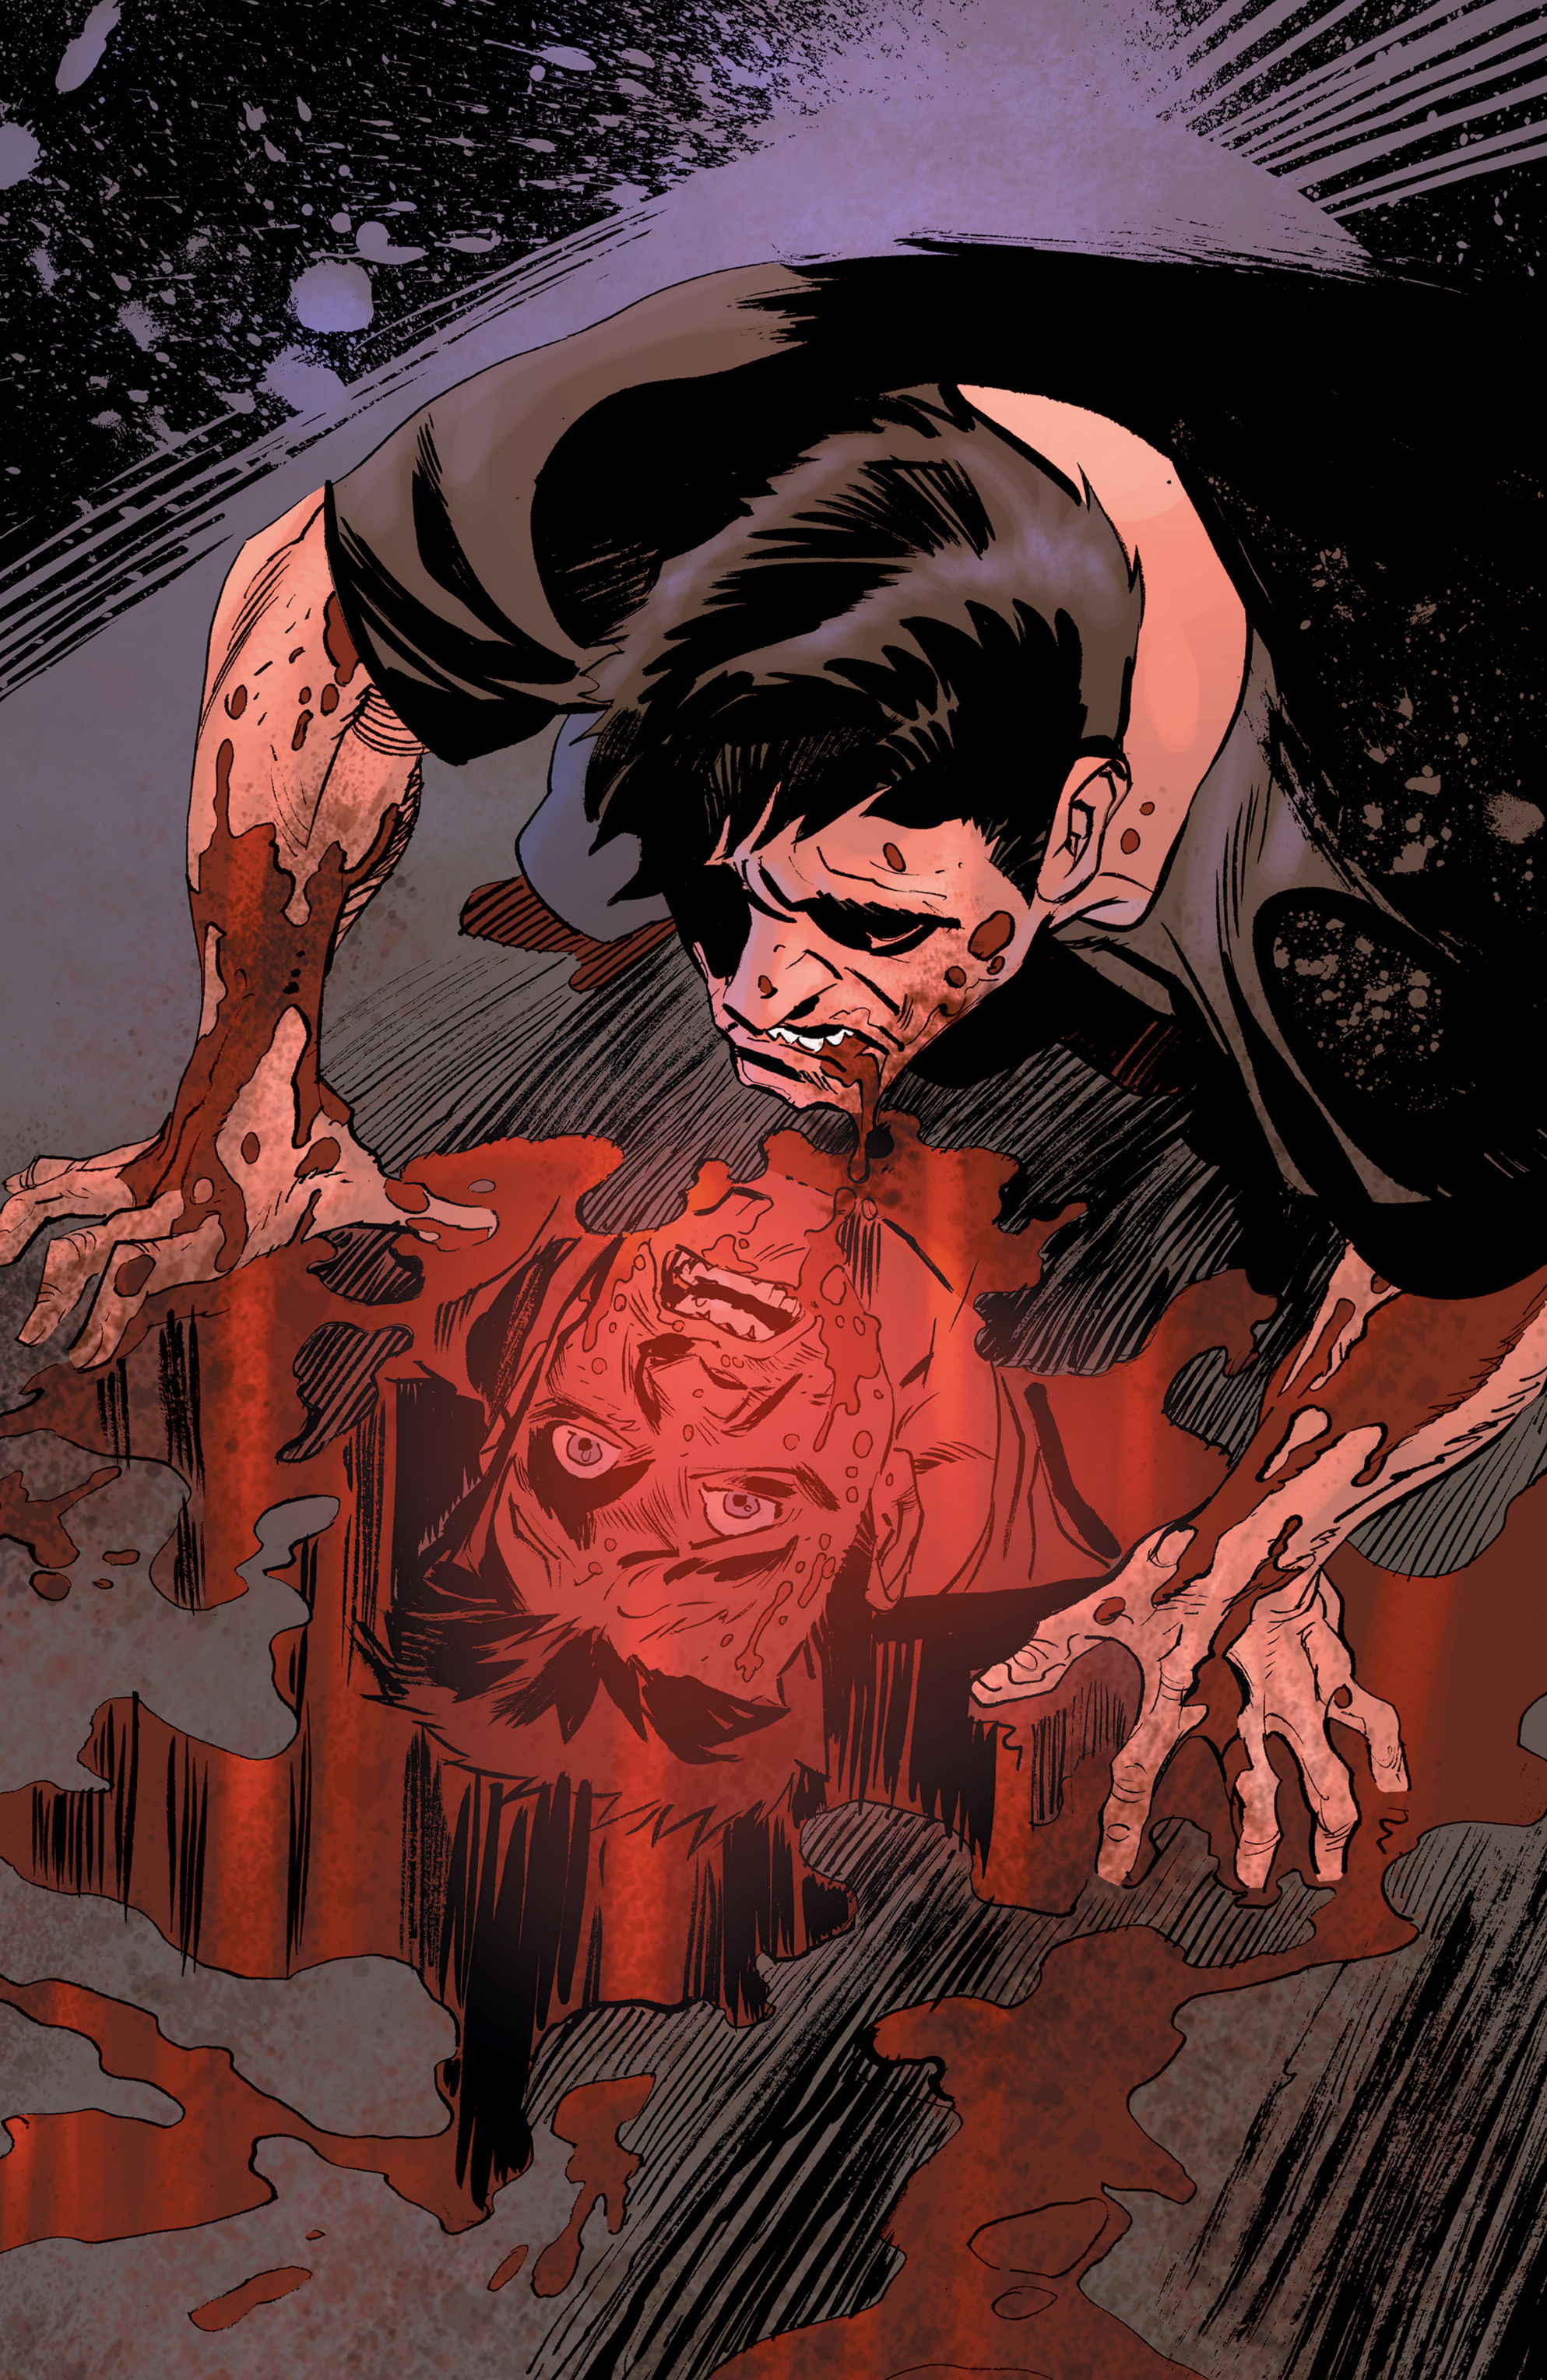 Read online Cannibal comic -  Issue #6 - 3